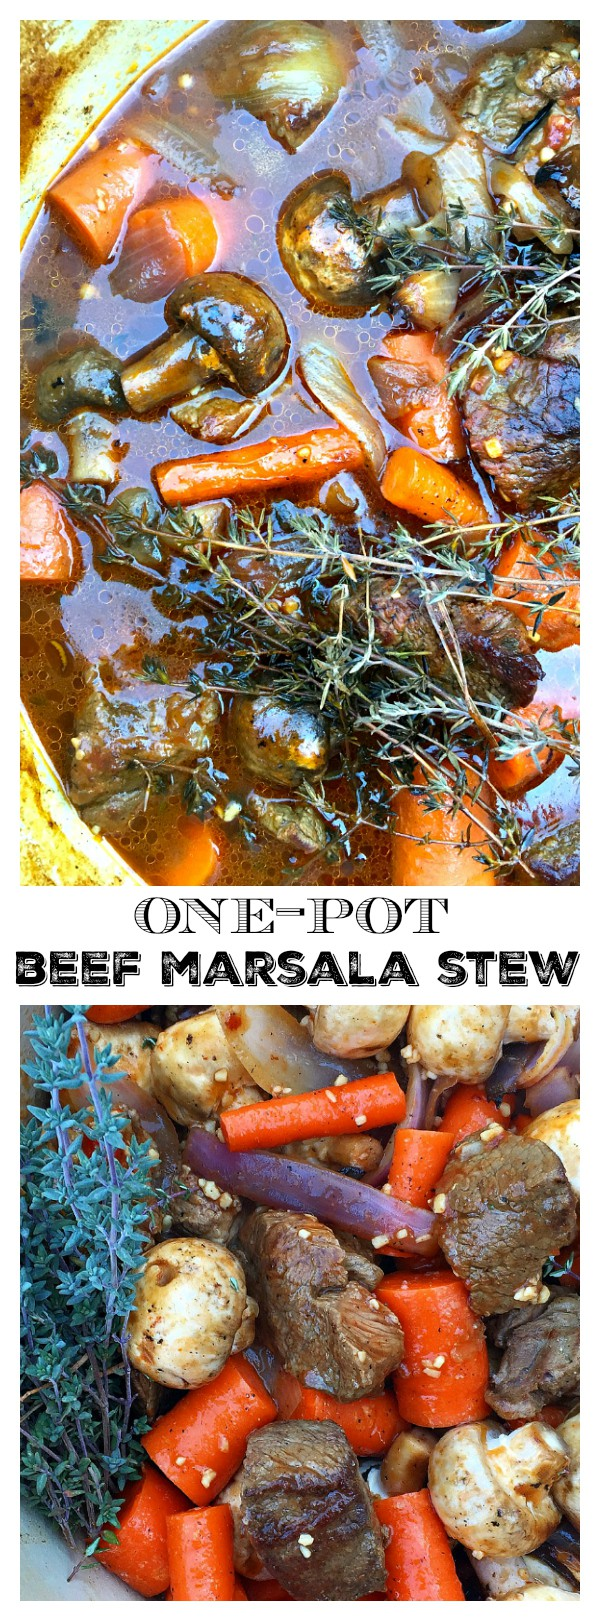 One-Pot Beef Marsala Stew